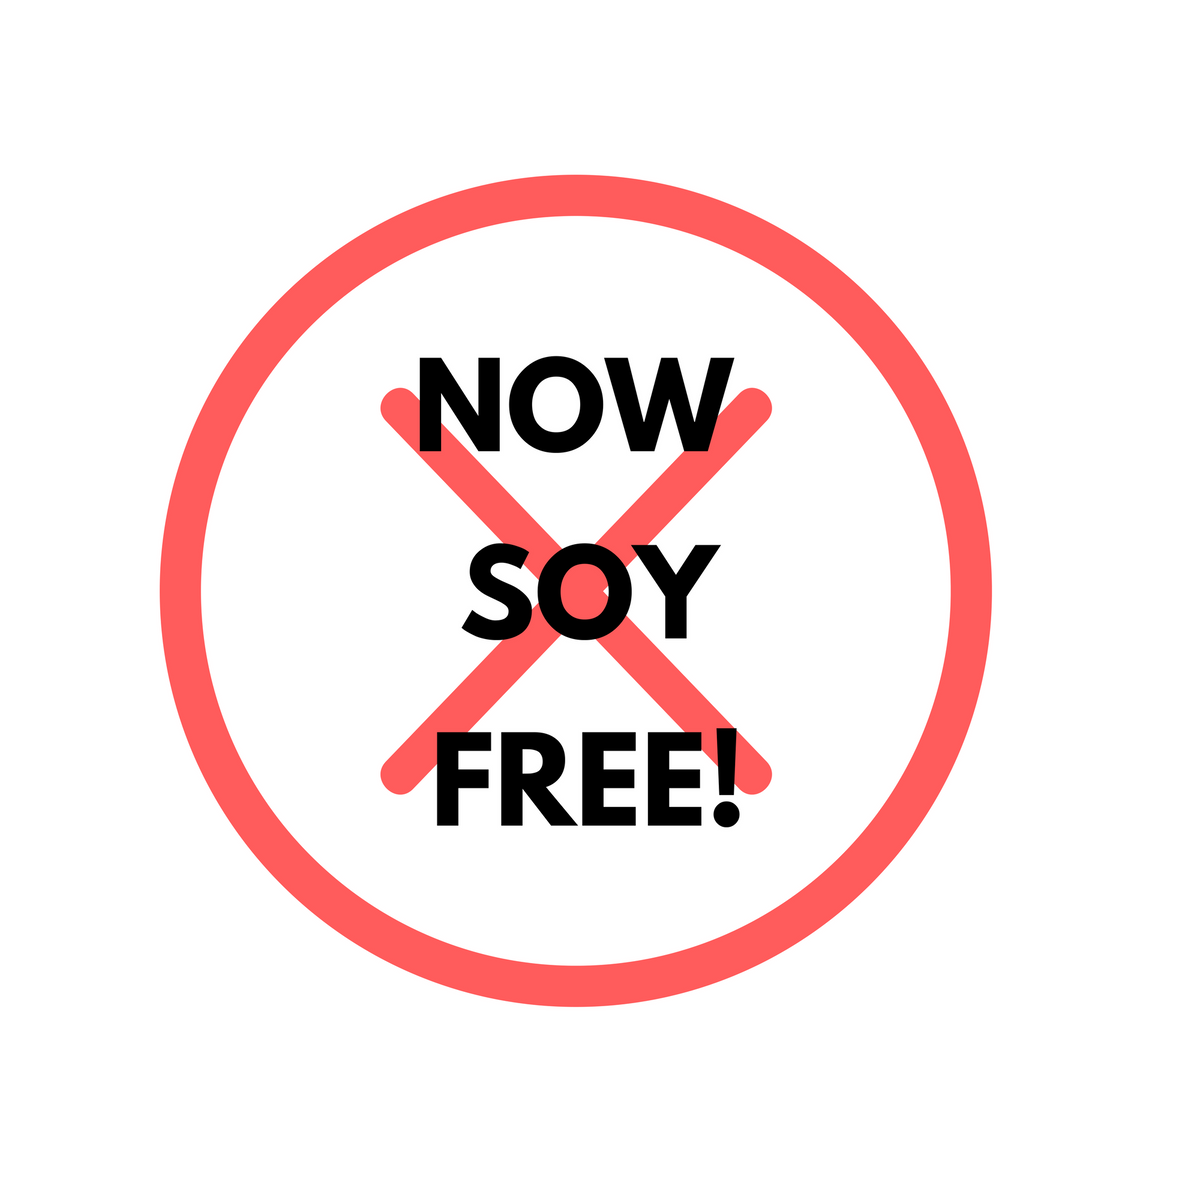 NEKSTELLA IS NOW SOY FREE!